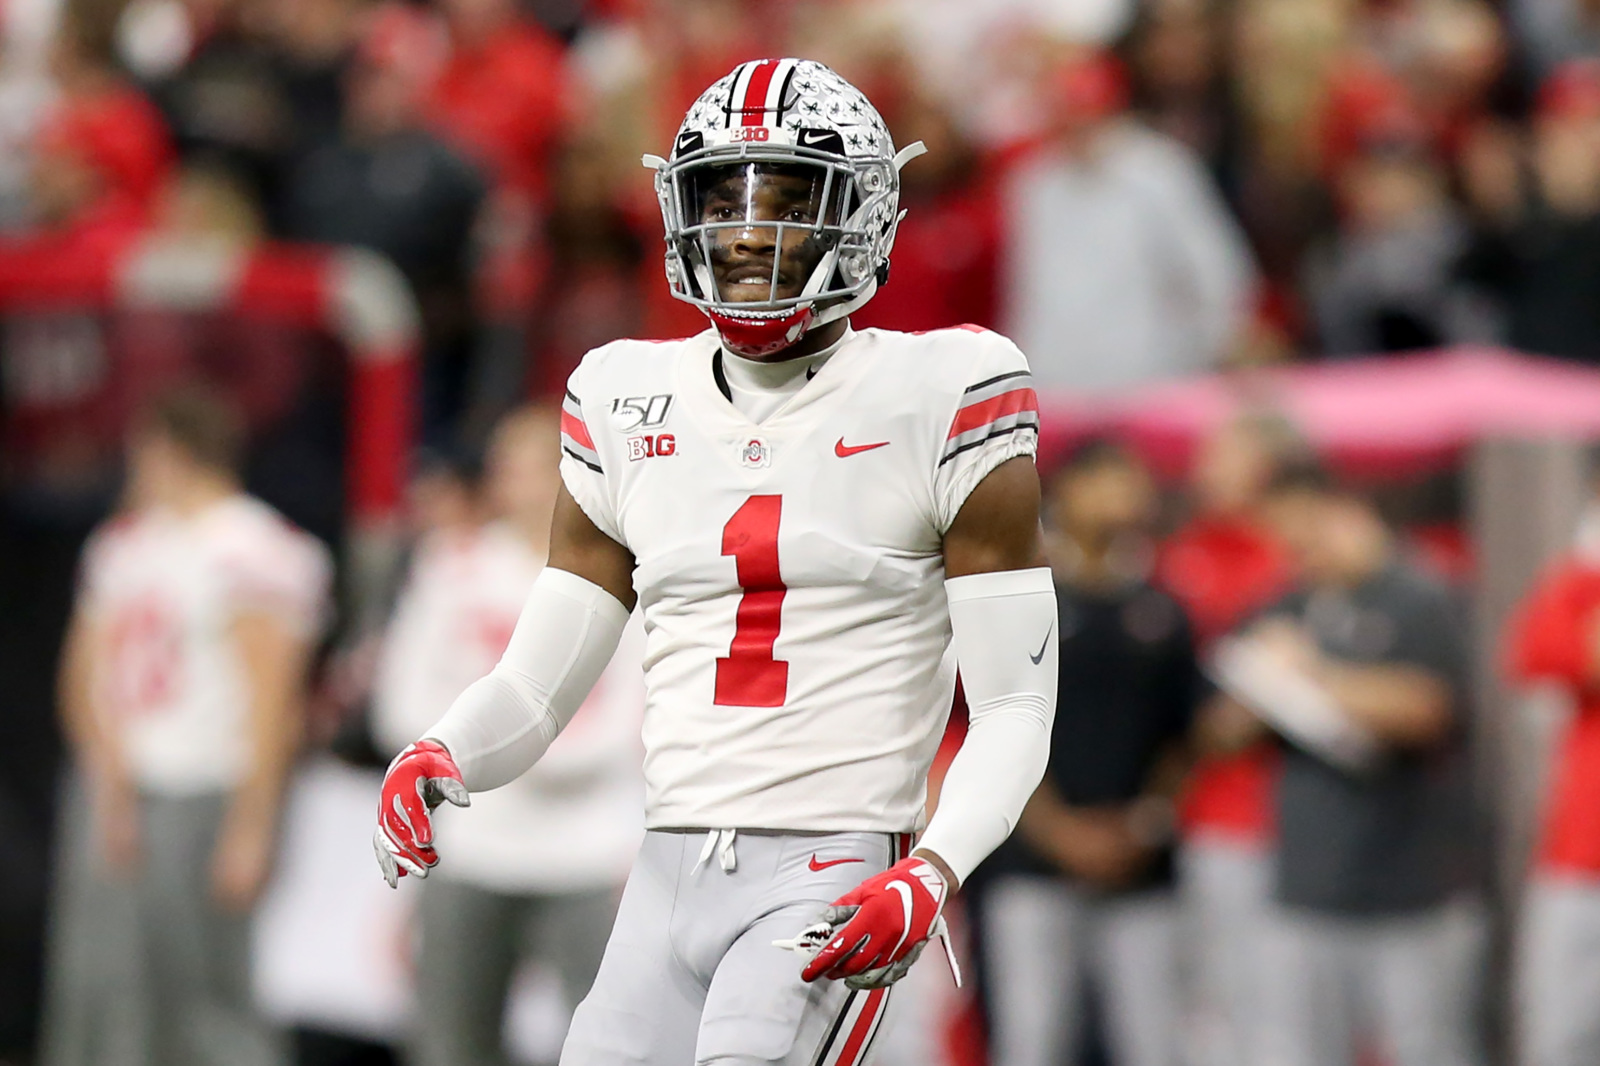 Ohio State Football: Best landing spots for top Buckeyes in NFL draft